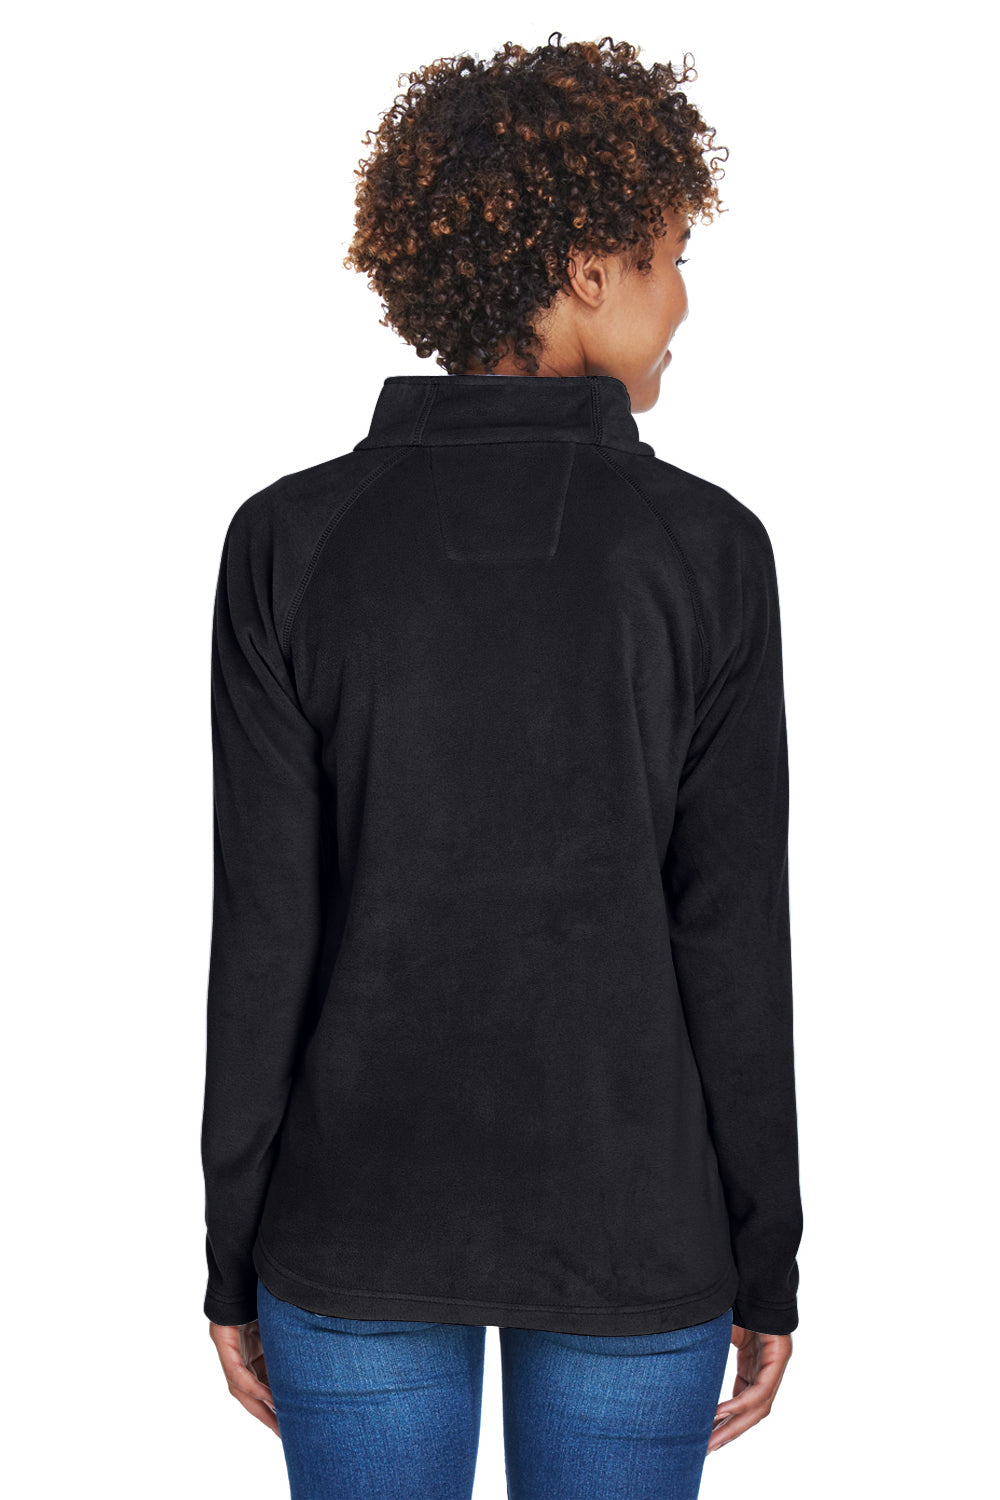 Team 365 TT90W Womens Campus Full Zip Microfleece Jacket Black Back